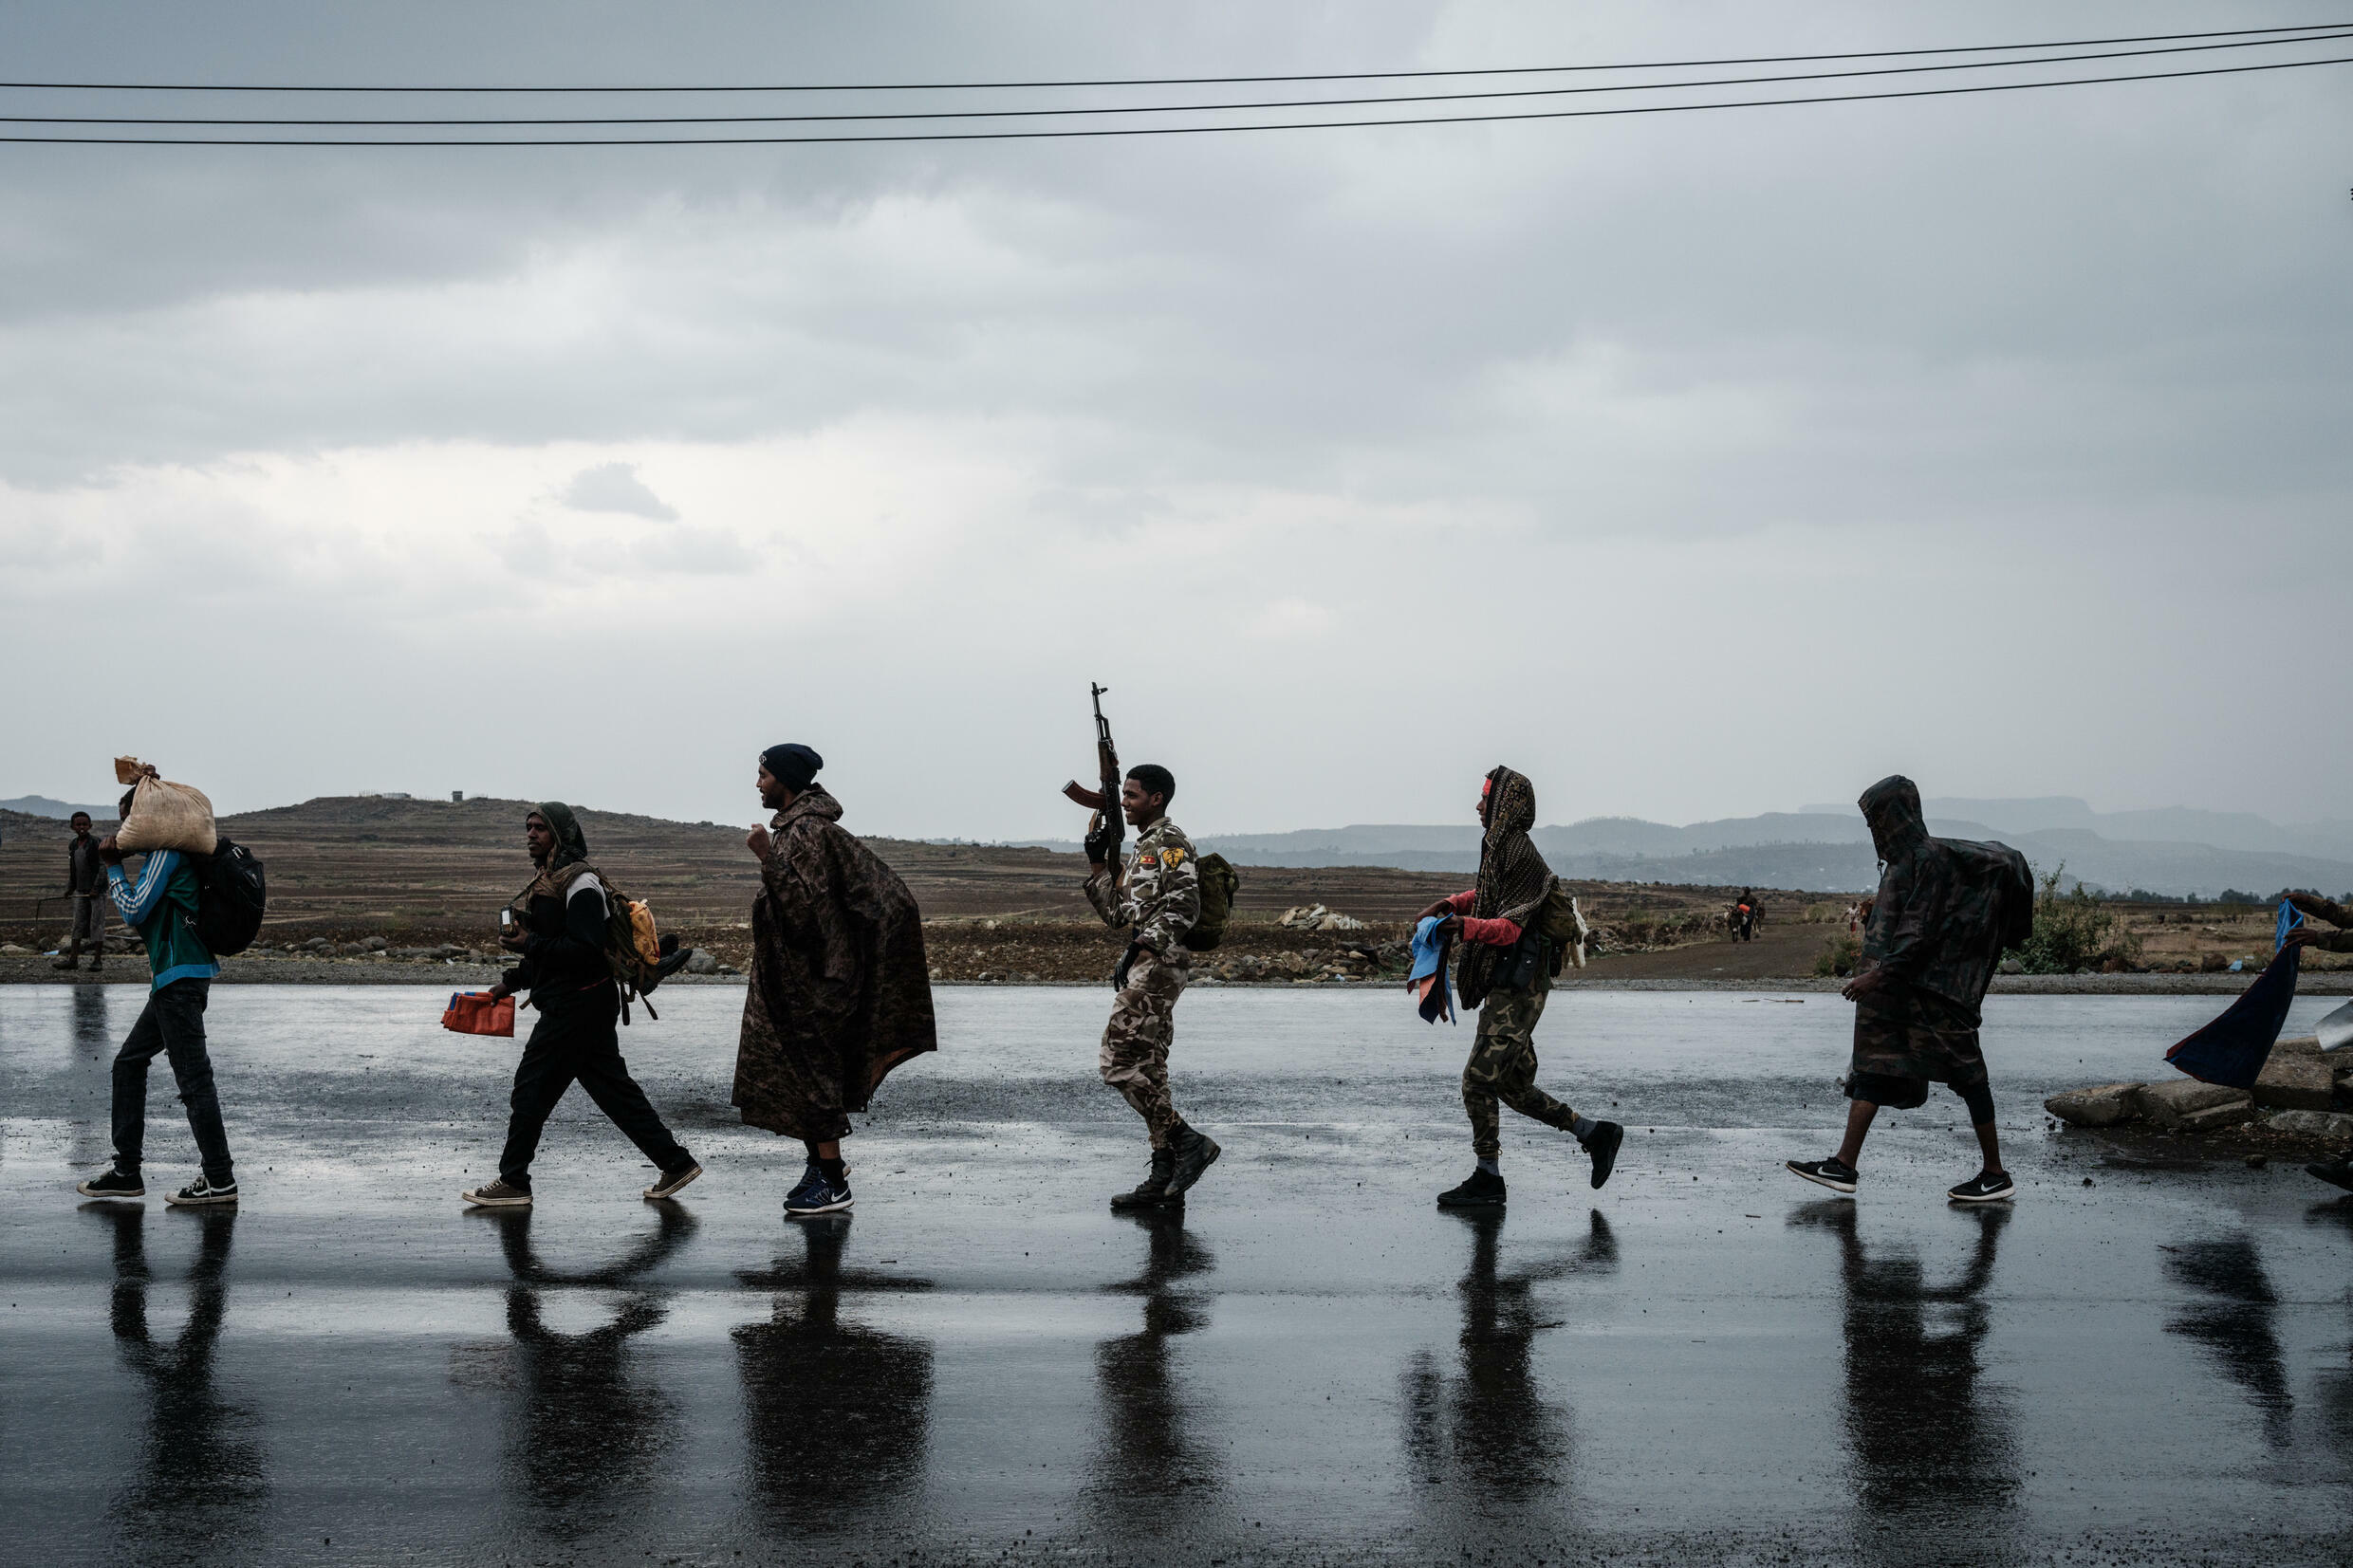 The Tigray Defence Forces (TDF) recaptured the regional capital Mekele at the end of June